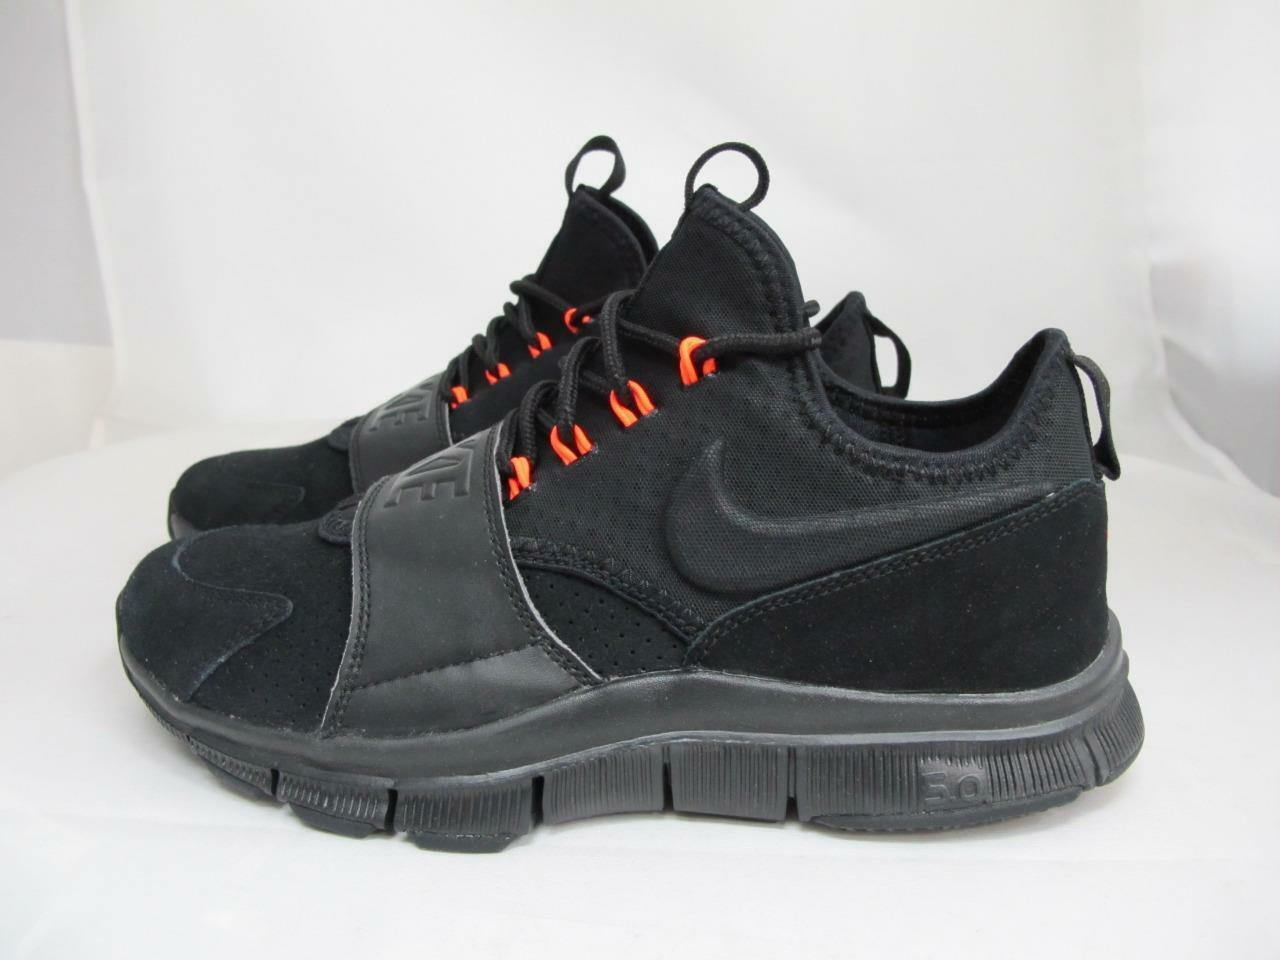 Comfortable and good-looking NEW MEN'S NIKE FREE ACE LTHR 749627-001